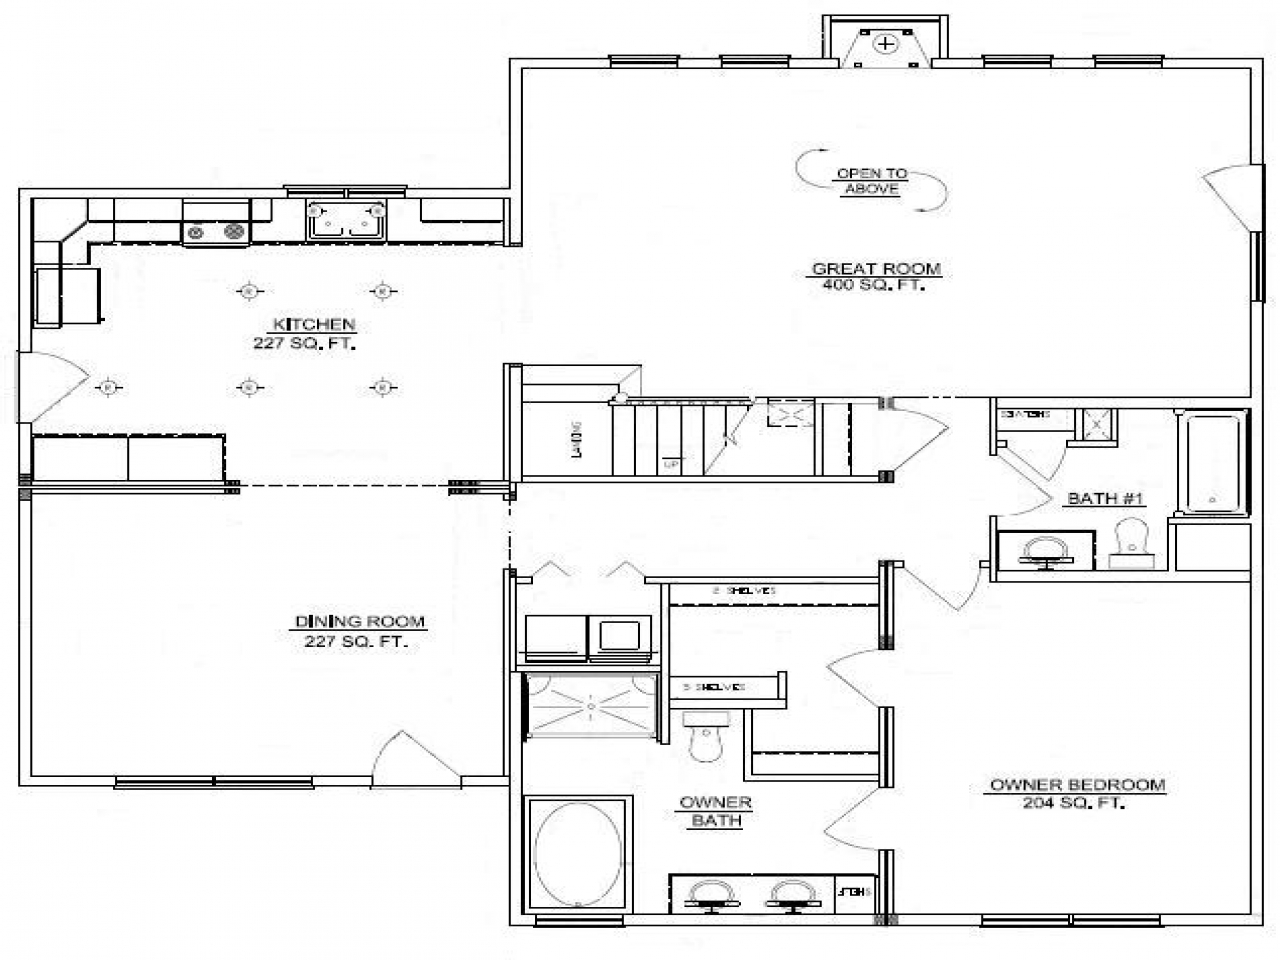 3 bedroom log cabin floor plans 3 bedroom double wide for 2 bedroom log cabin plans